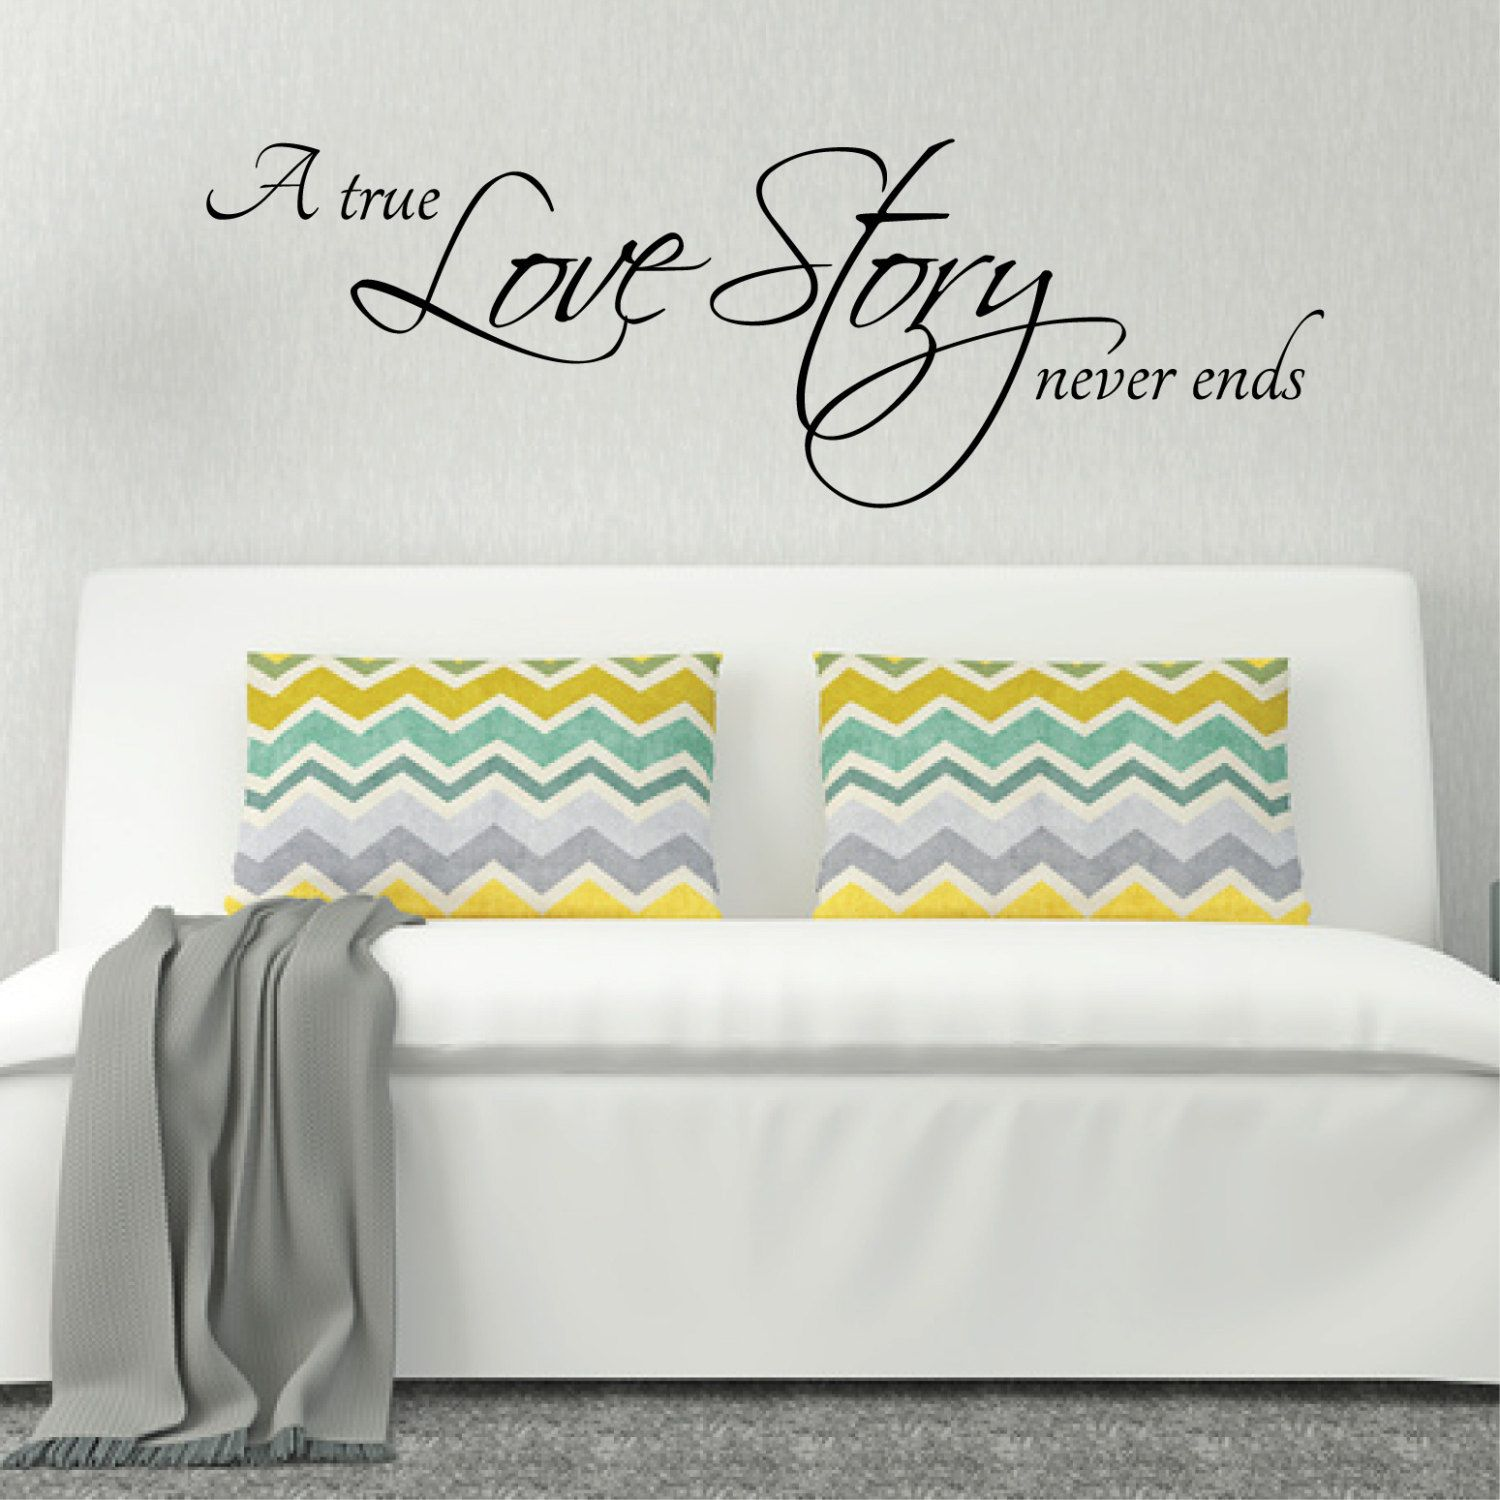 Above Bed Wall Sticker Love Quote A True Love Story Never Ends L